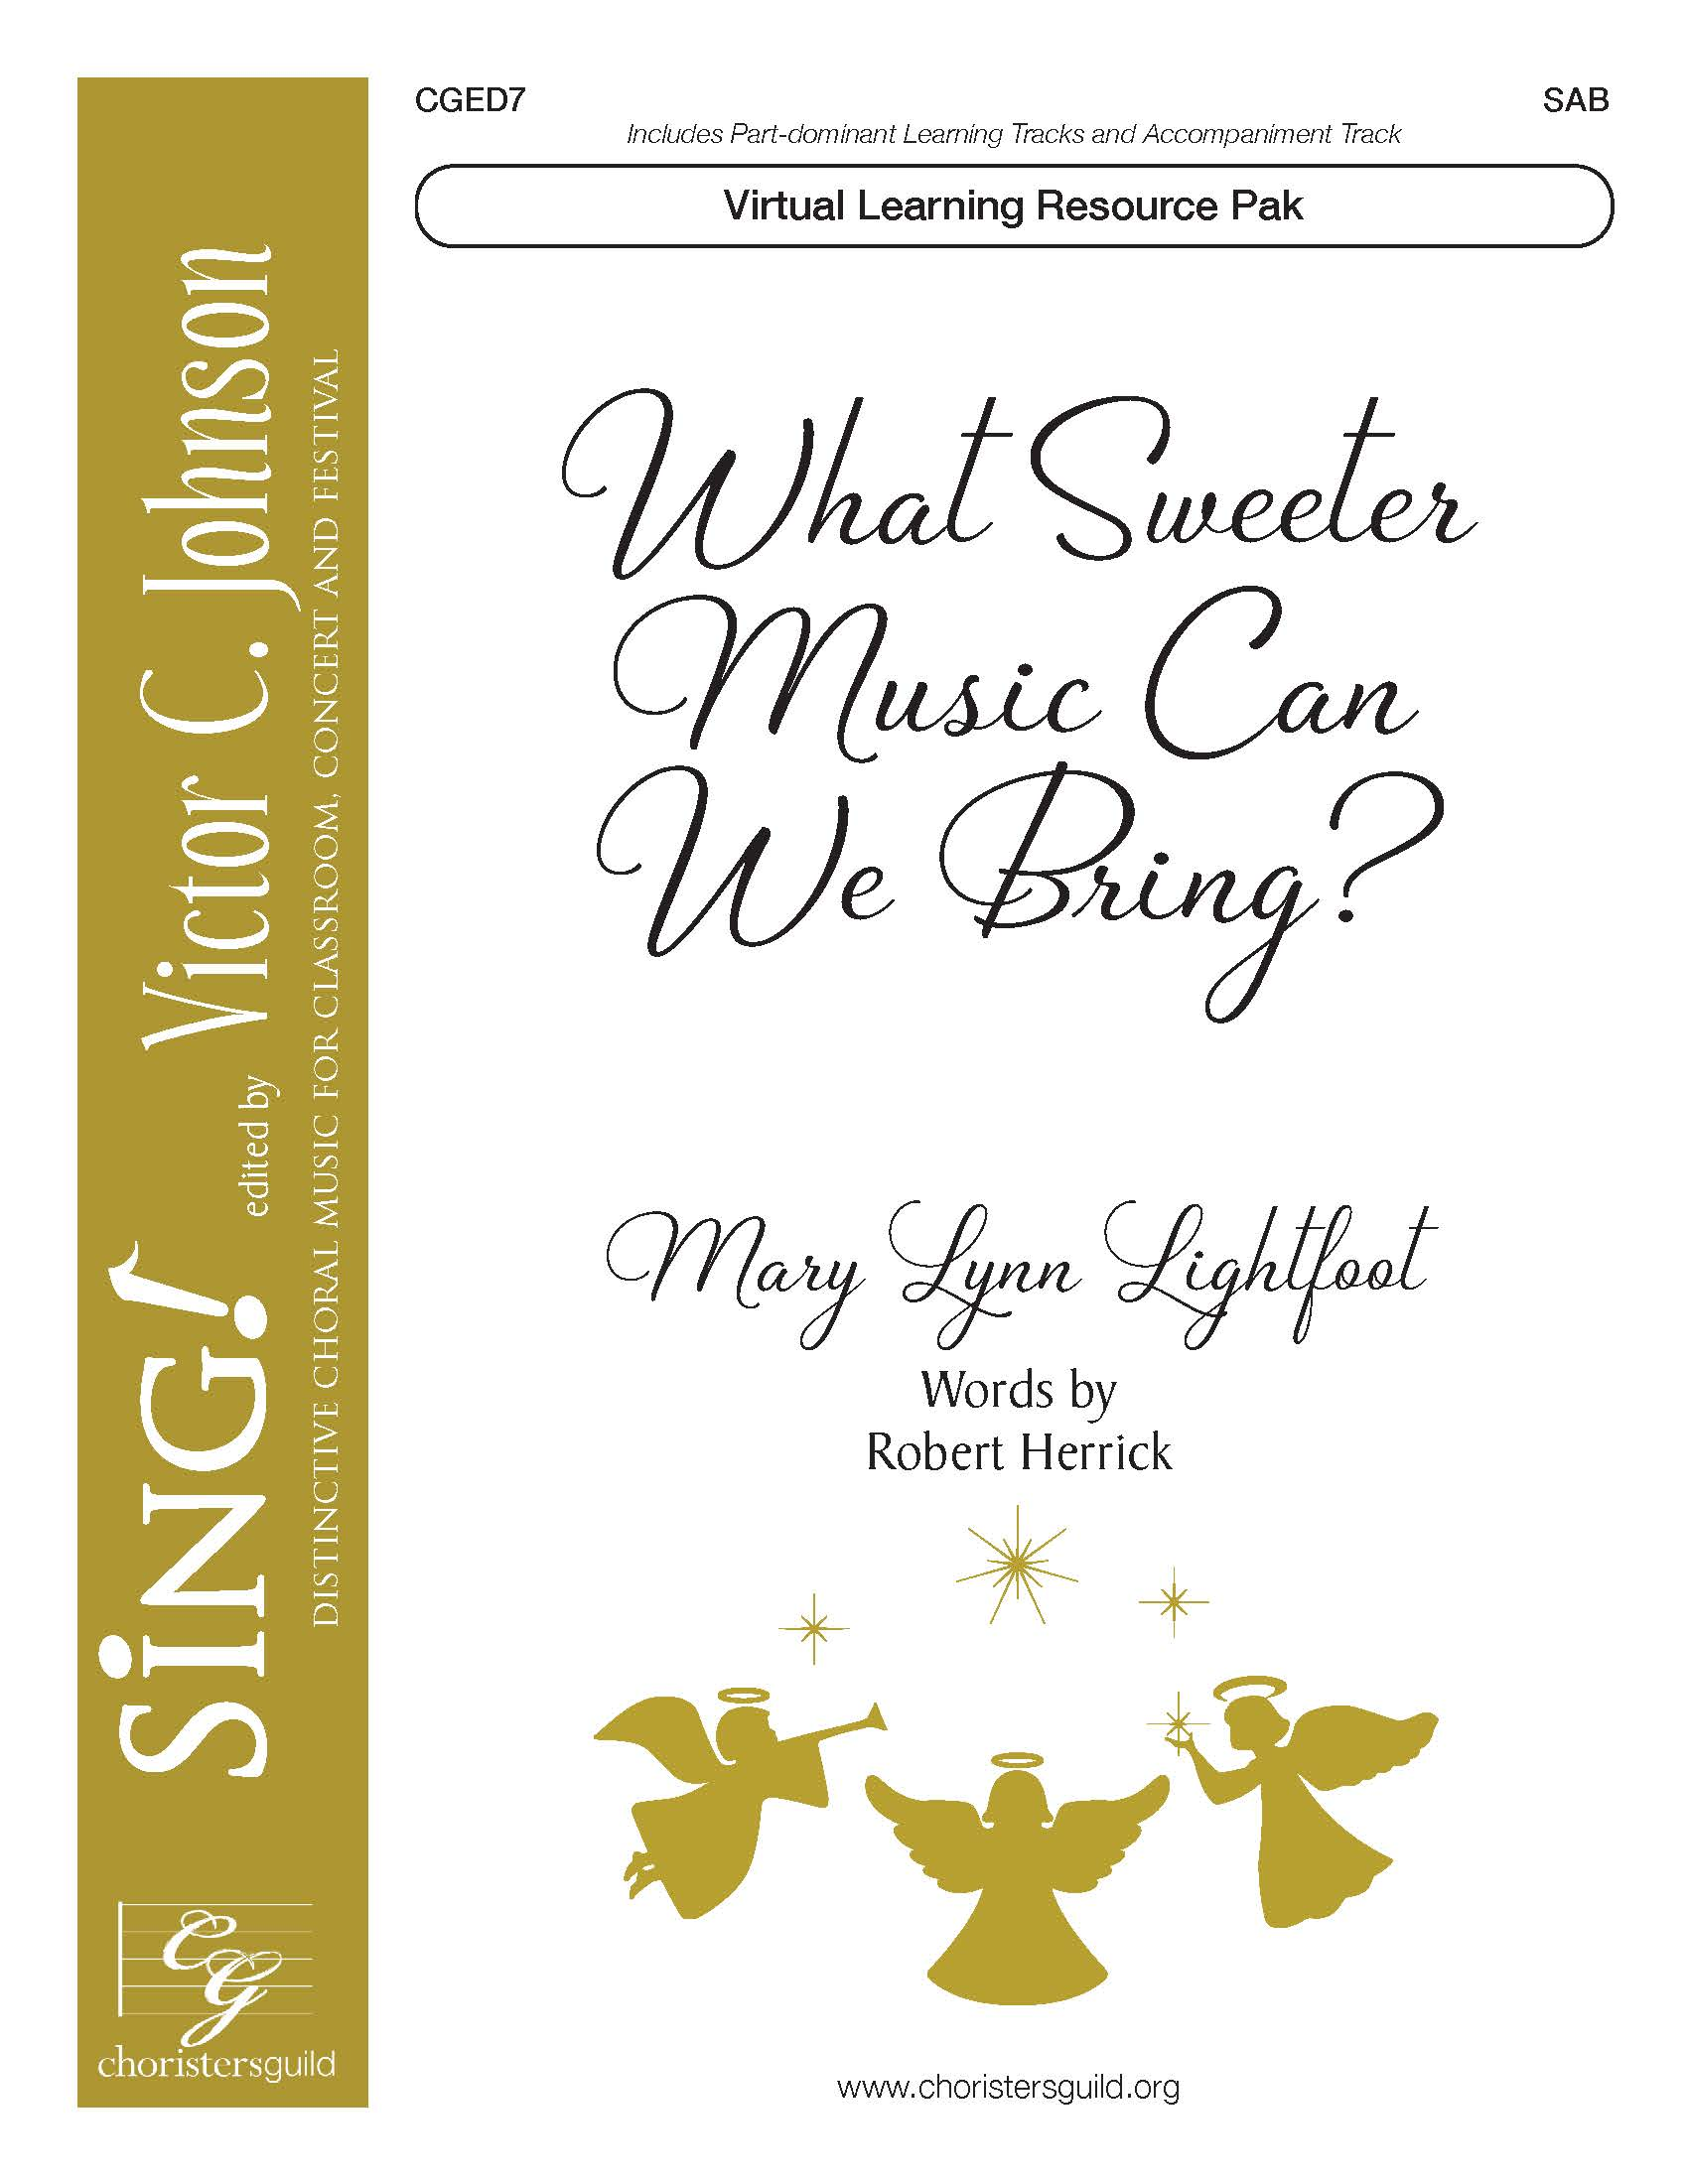 What Sweeter Music Can We Bring? (Virtual Learning Resource Pak) - SAB